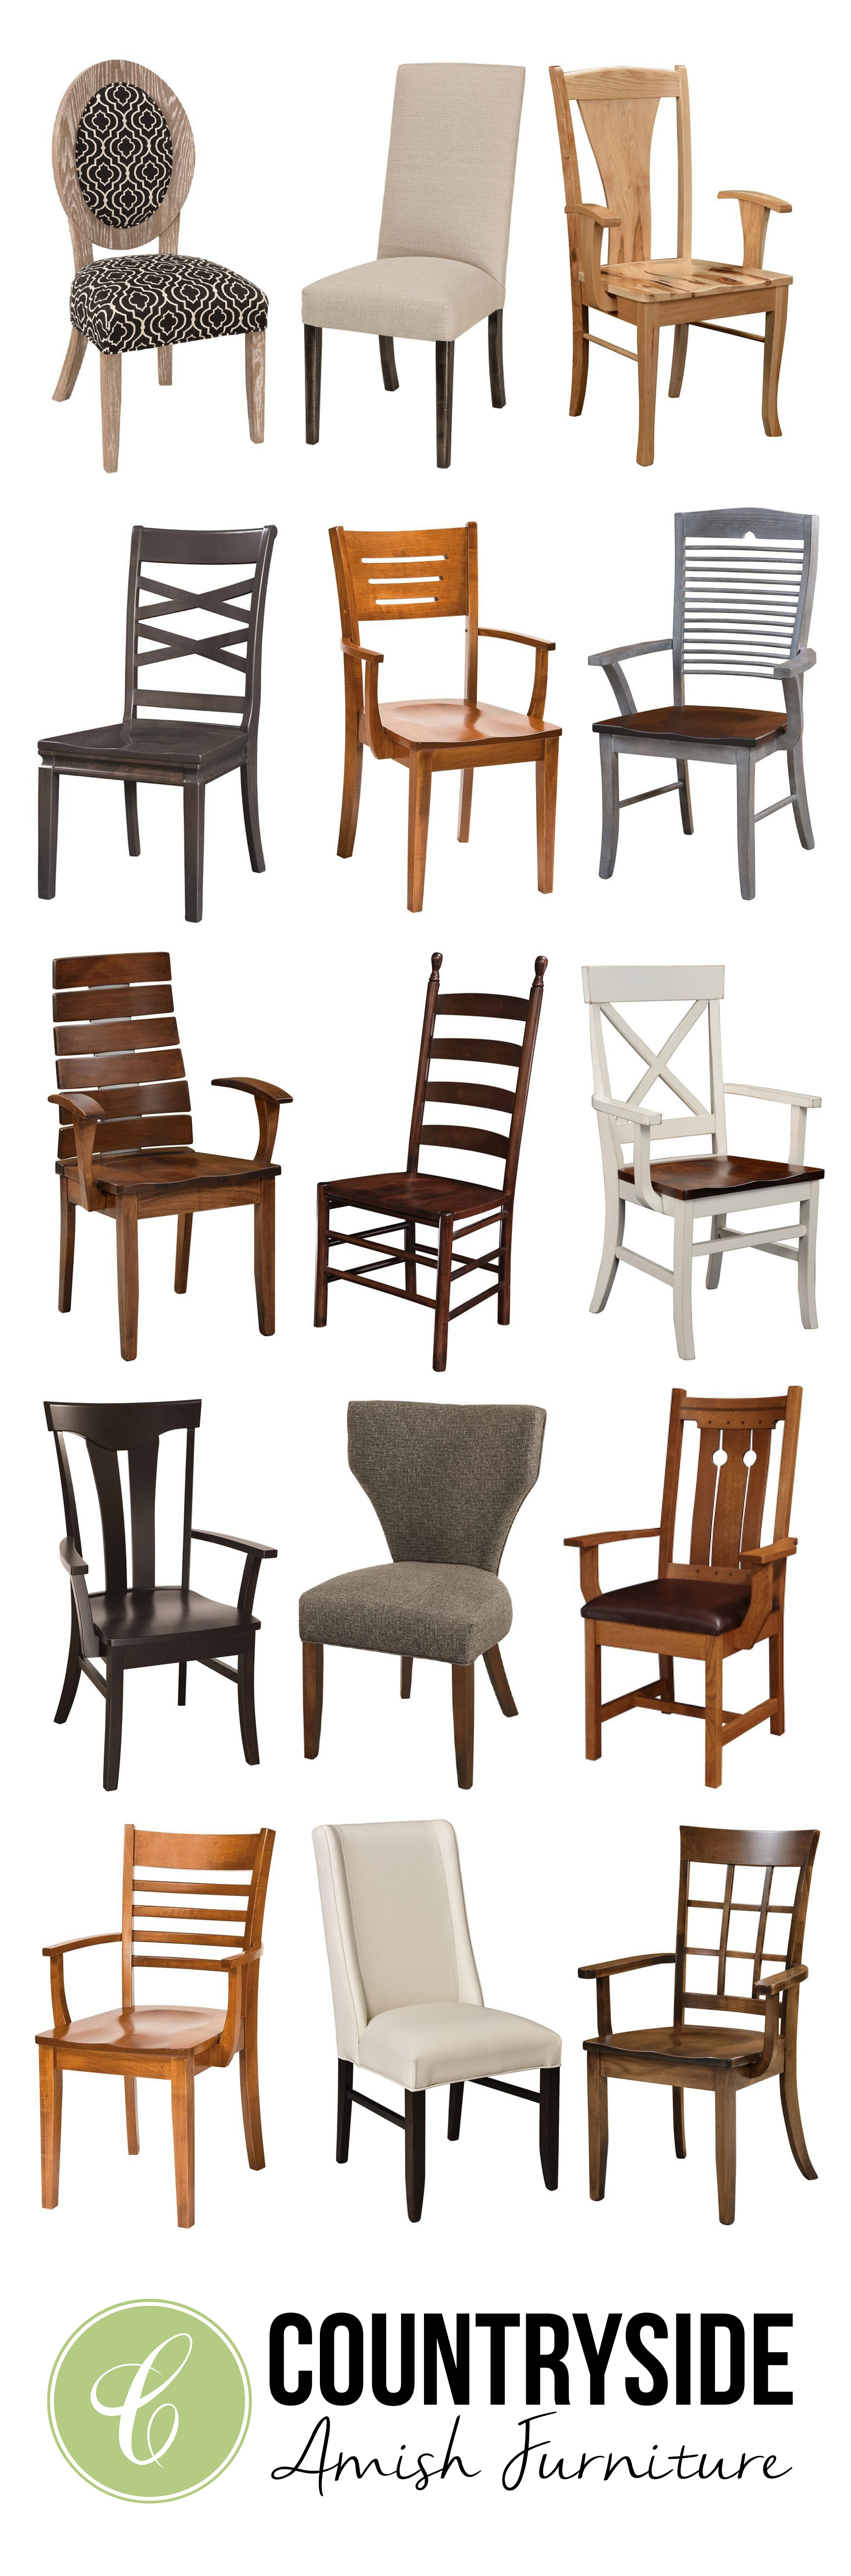 Choosing A Dining Chair Style Types Of Dining Chairs Chaises De